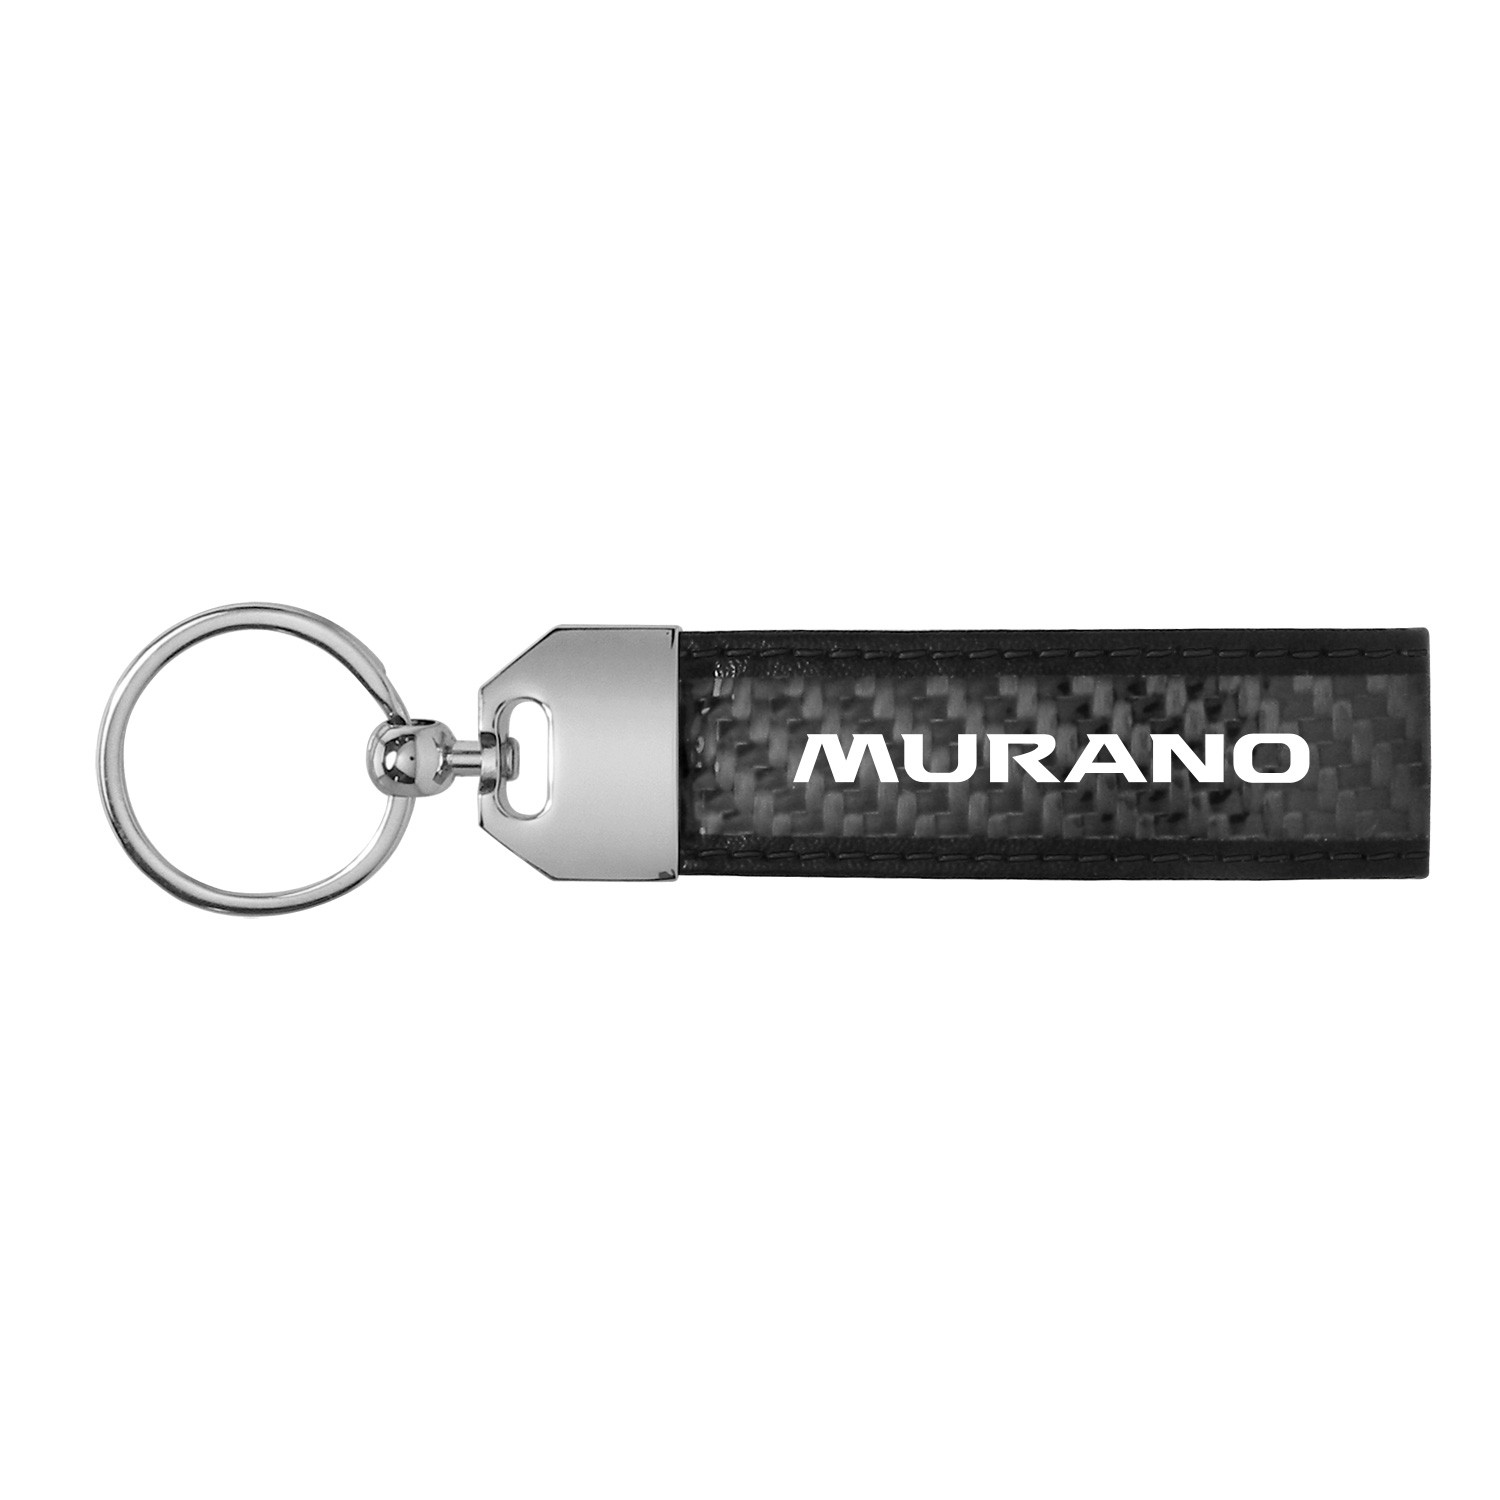 Nissan Murano Real Carbon Fiber Loop Key Chain with Black Stitching